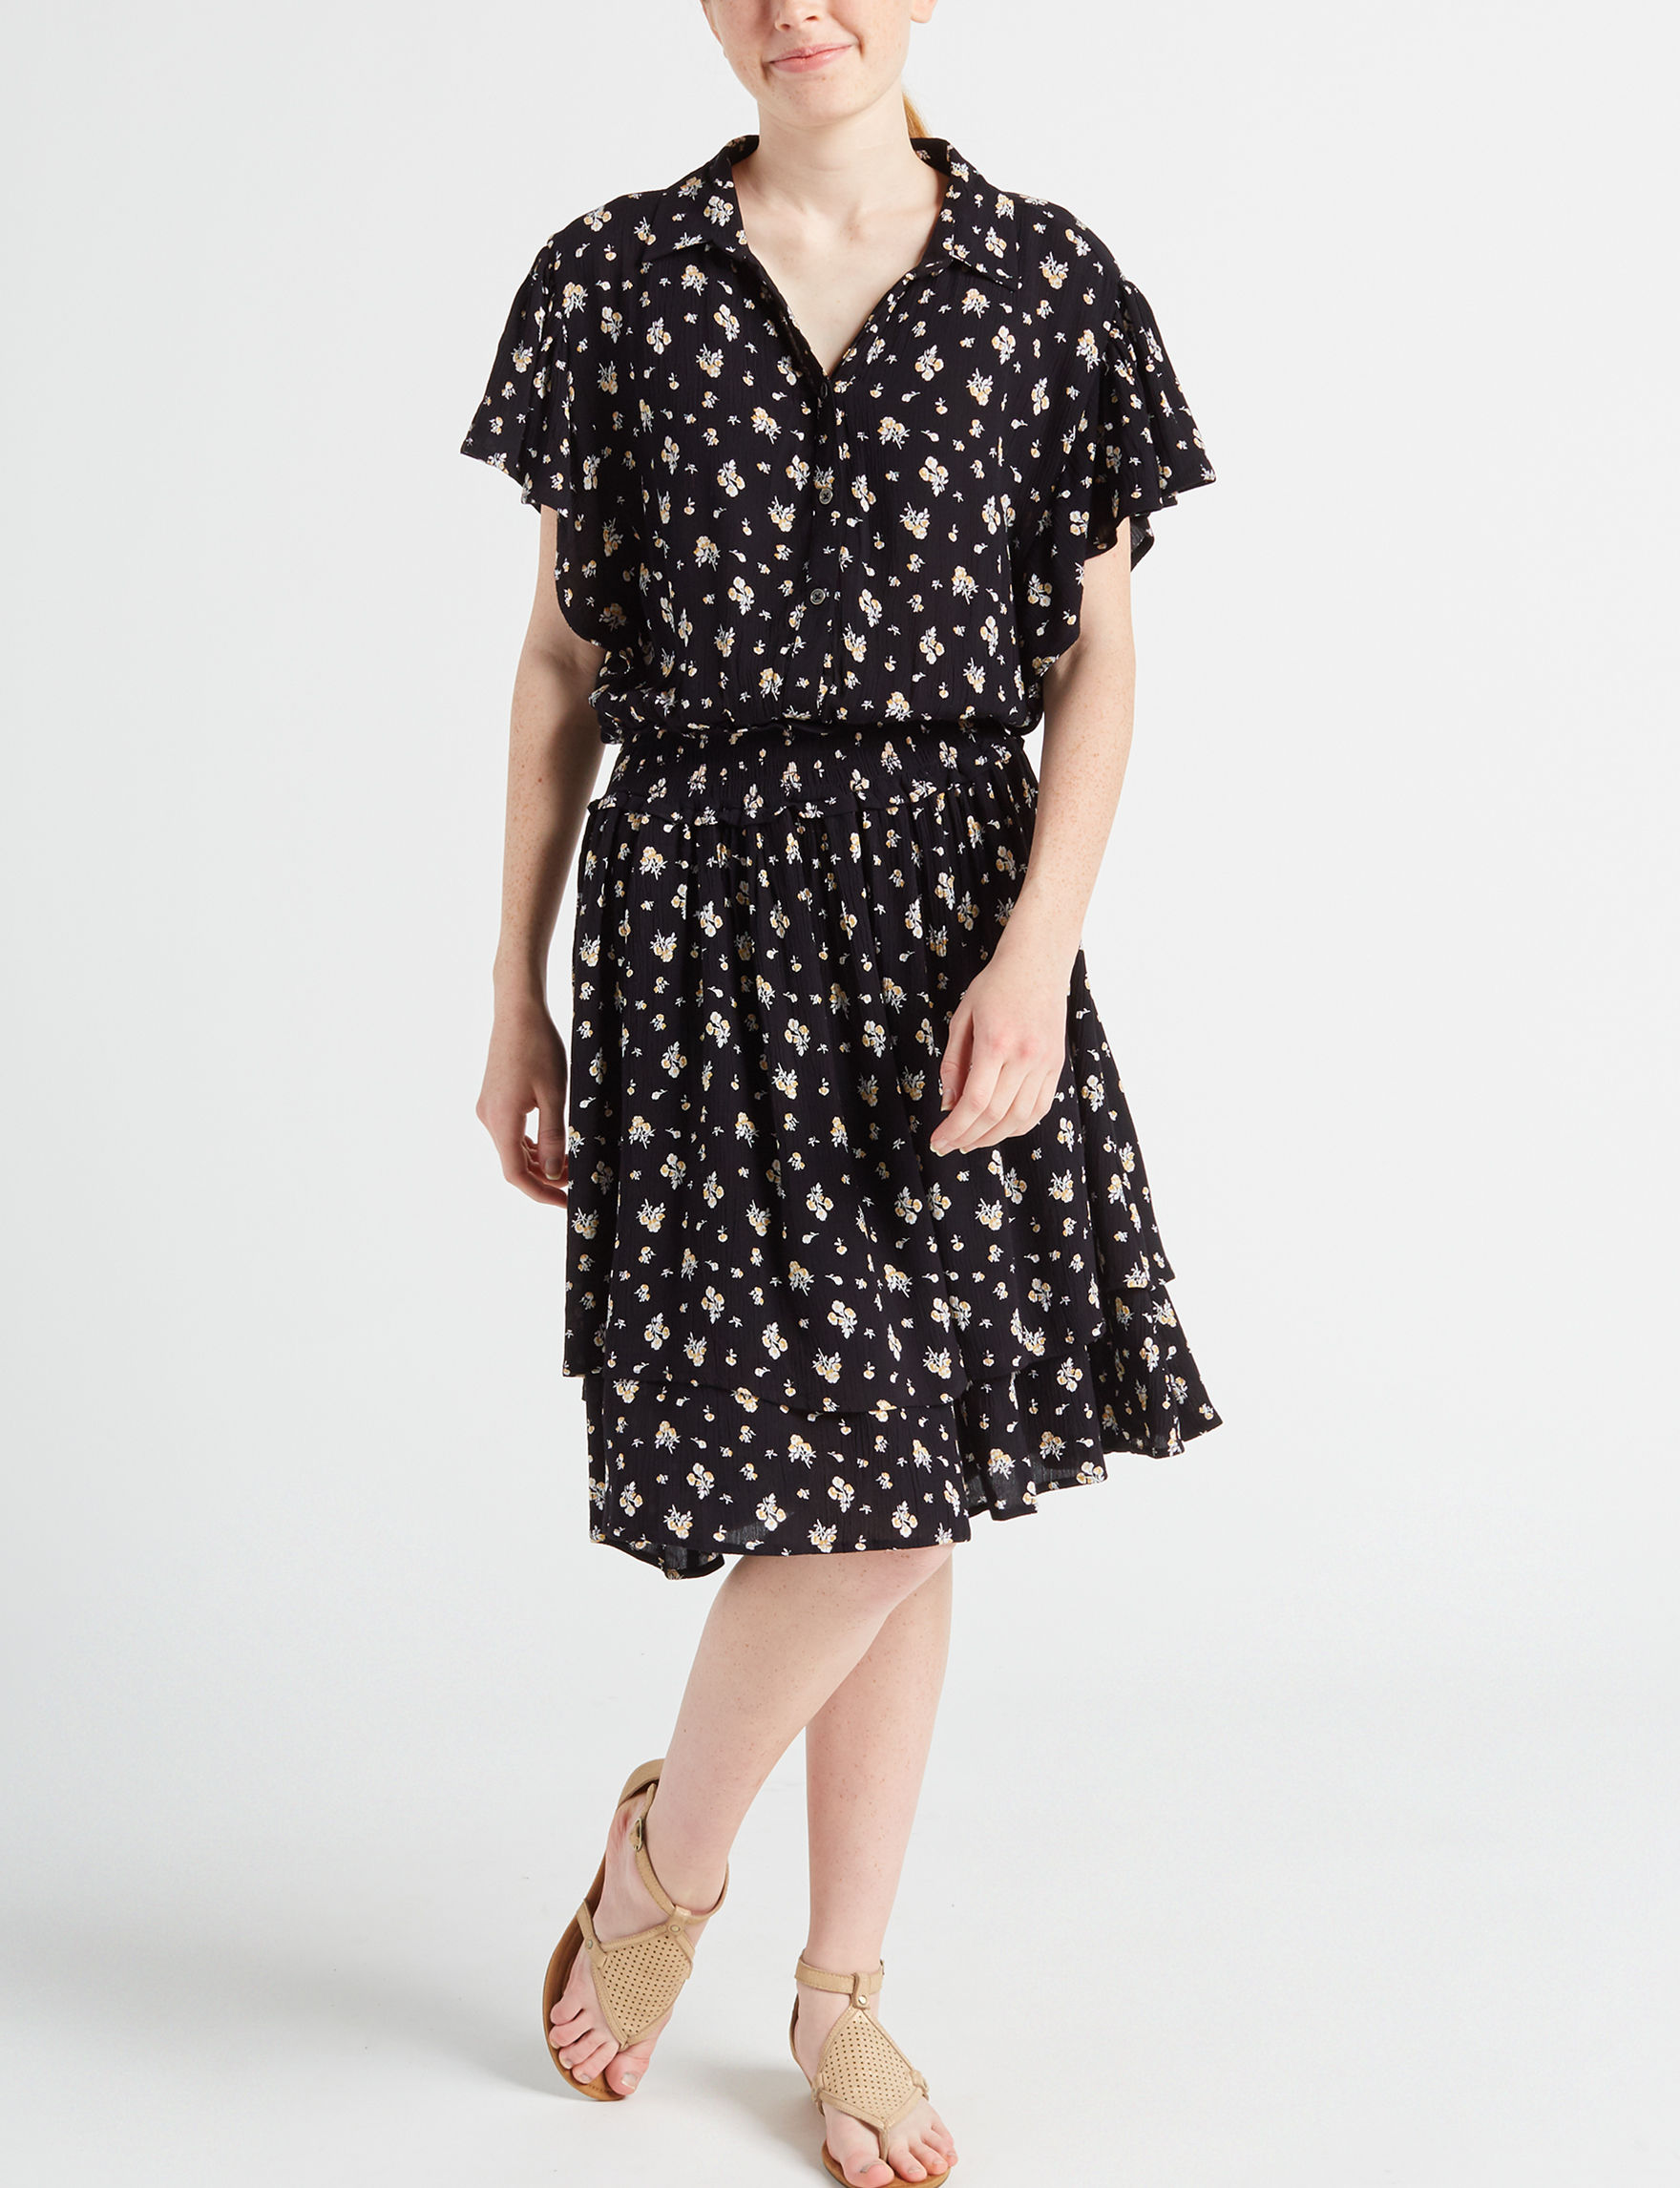 C&C California Black Everyday & Casual A-line Dresses